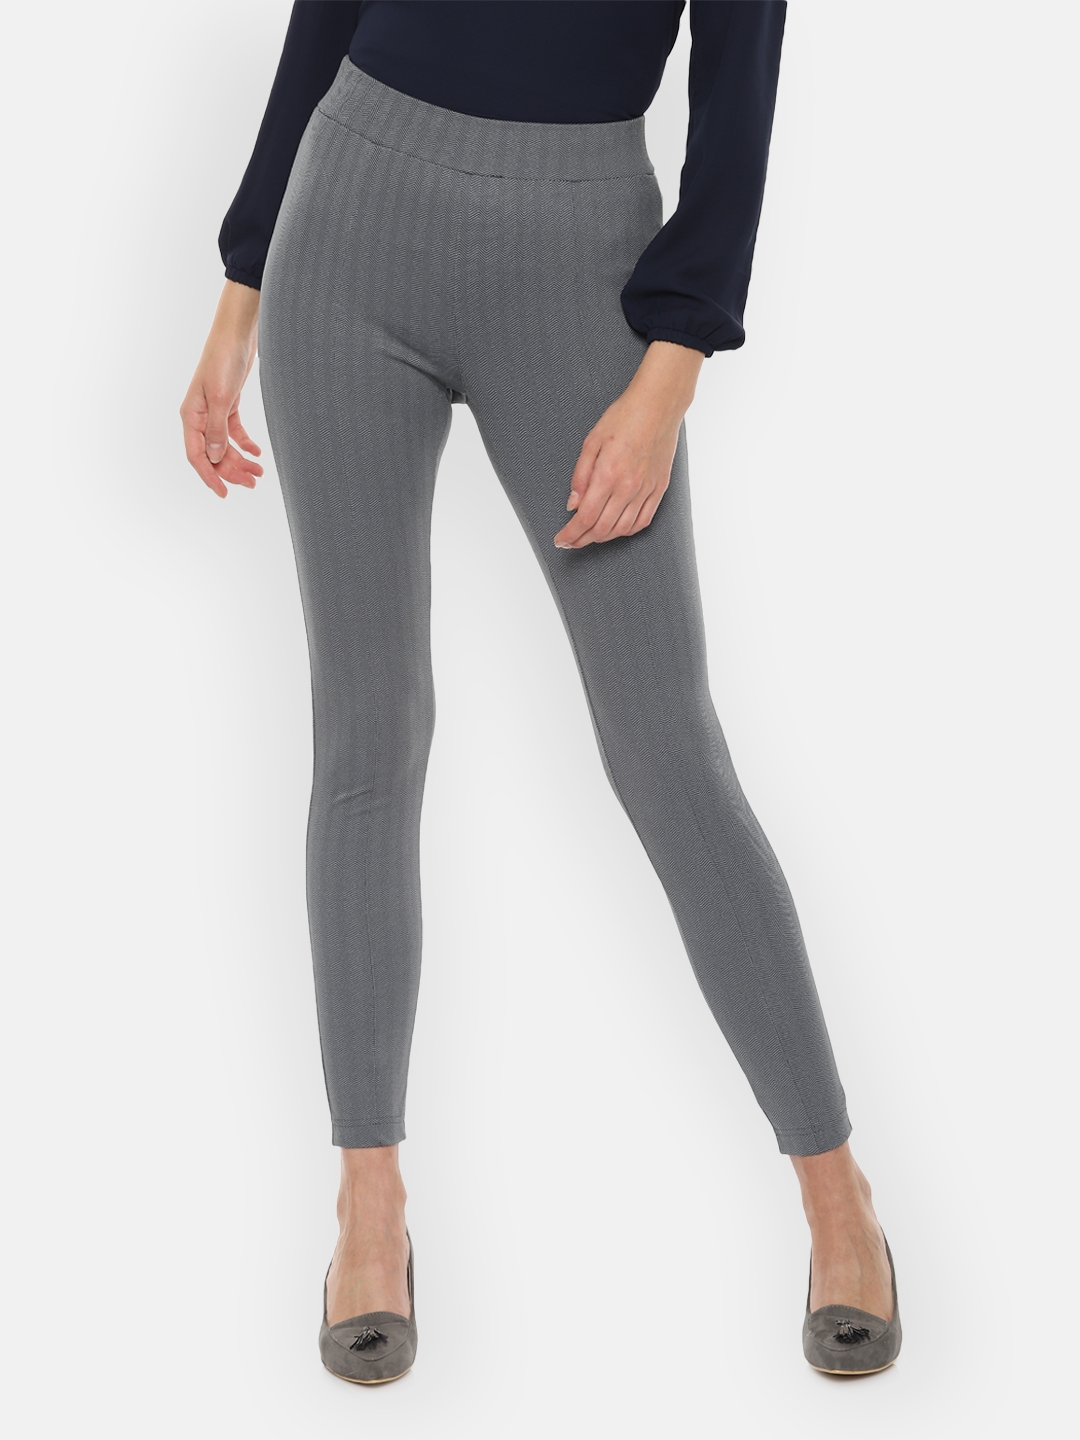 Van Heusen Woman Grey   Black Jeggings